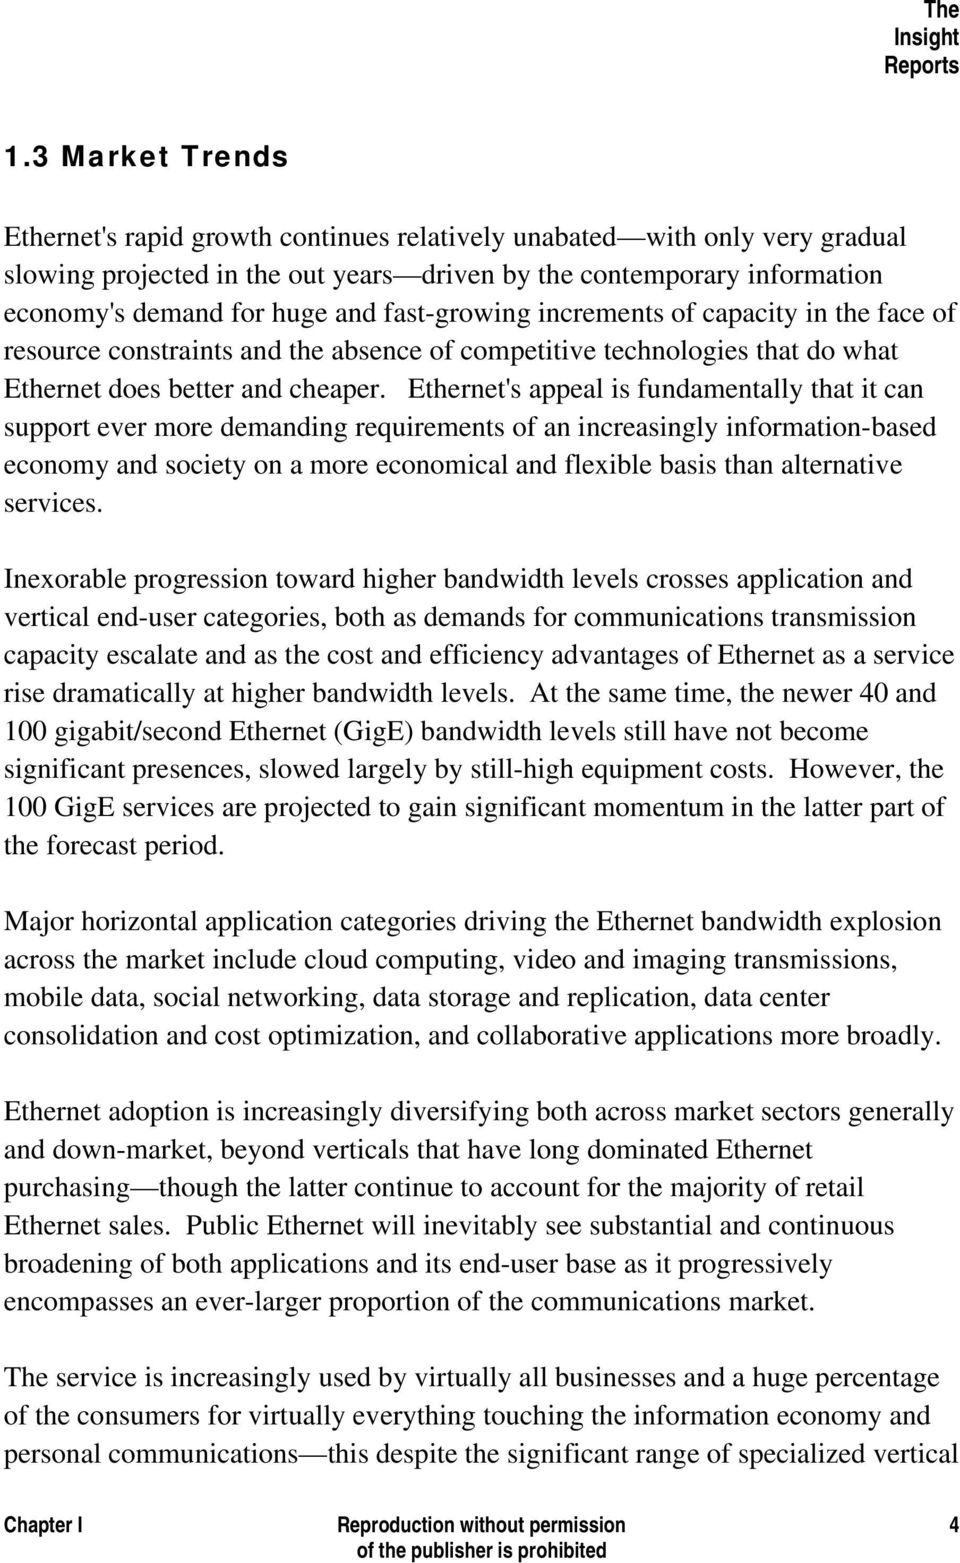 Ethernet's appeal is fundamentally that it can support ever more demanding requirements of an increasingly information-based economy and society on a more economical and flexible basis than